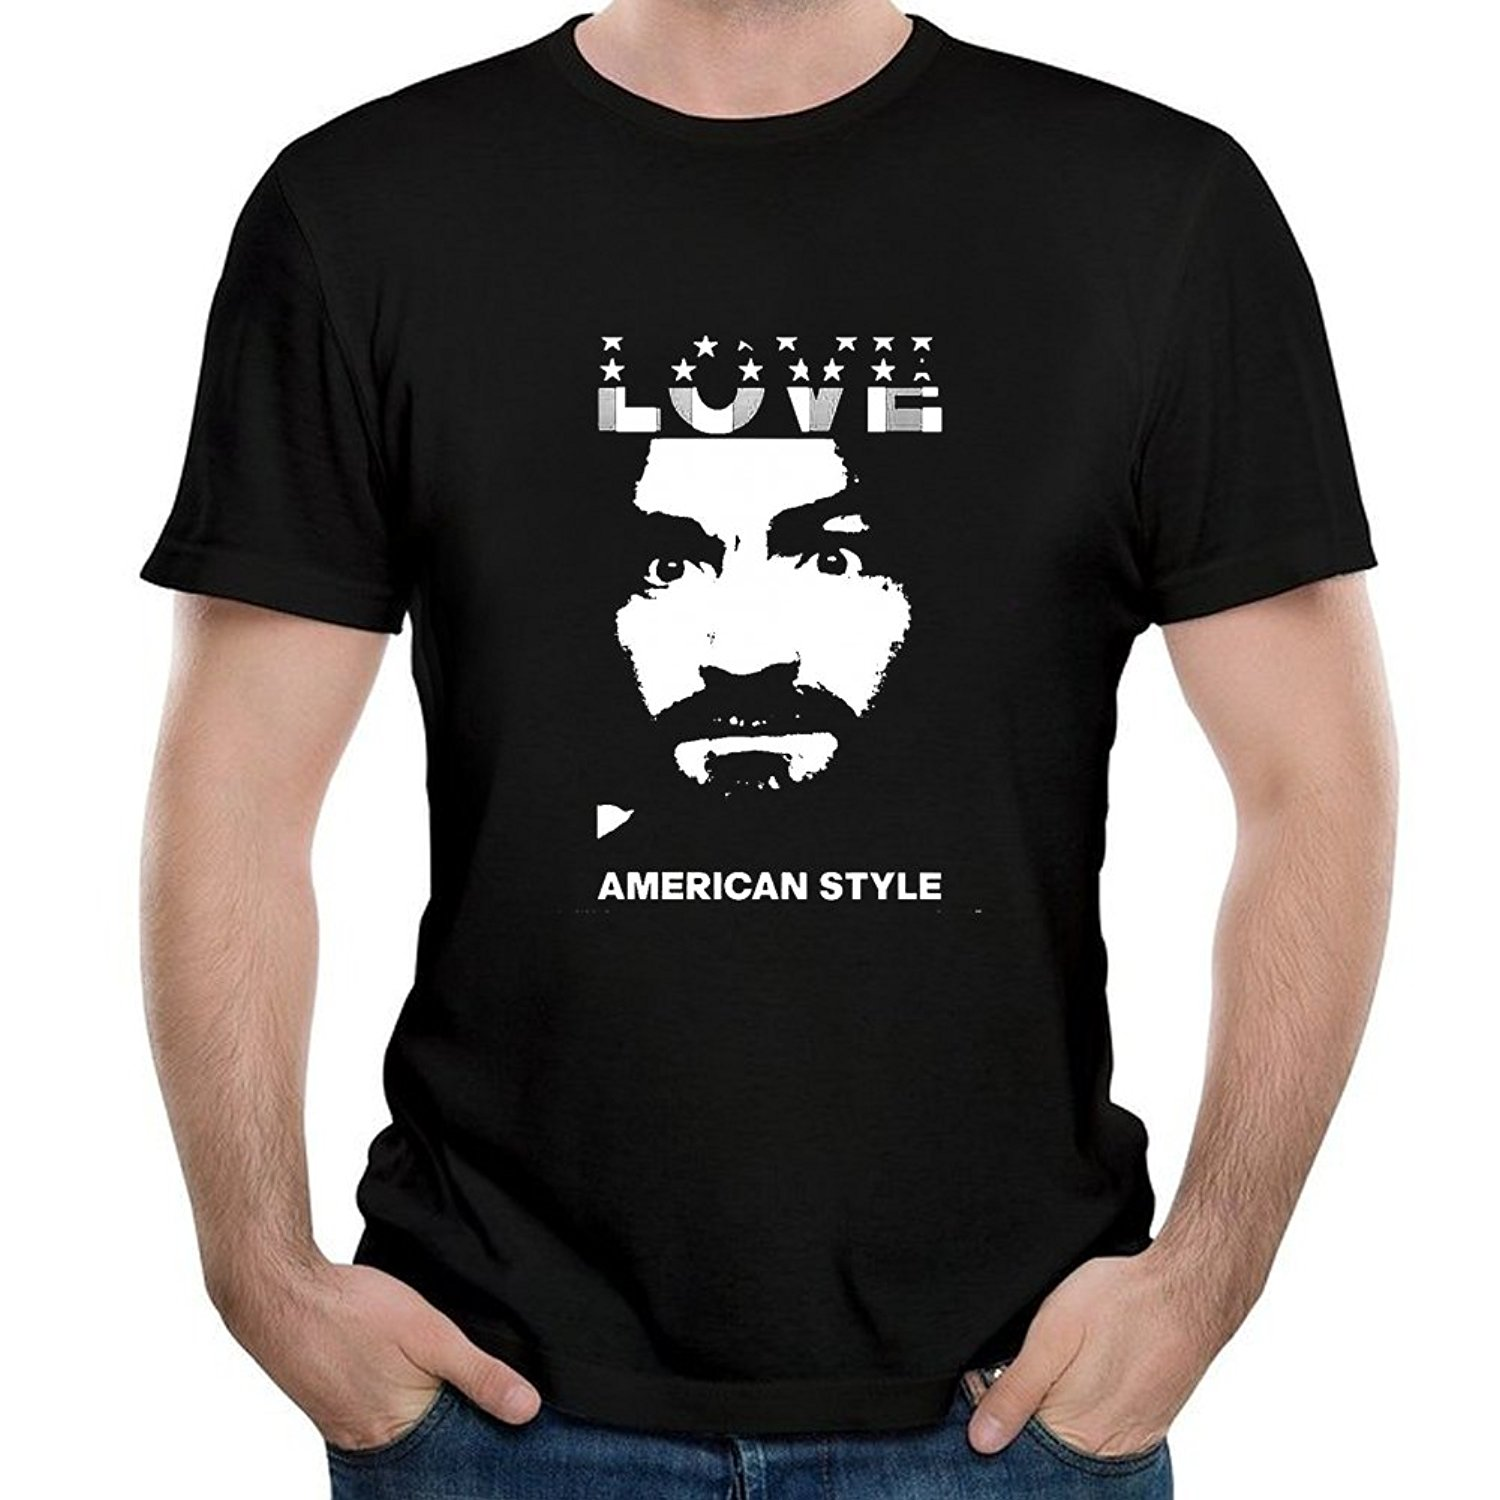 Latest Fashion Tshirt Streetwear Tee Comfortable T Shirt Men's Charles Manson Short...